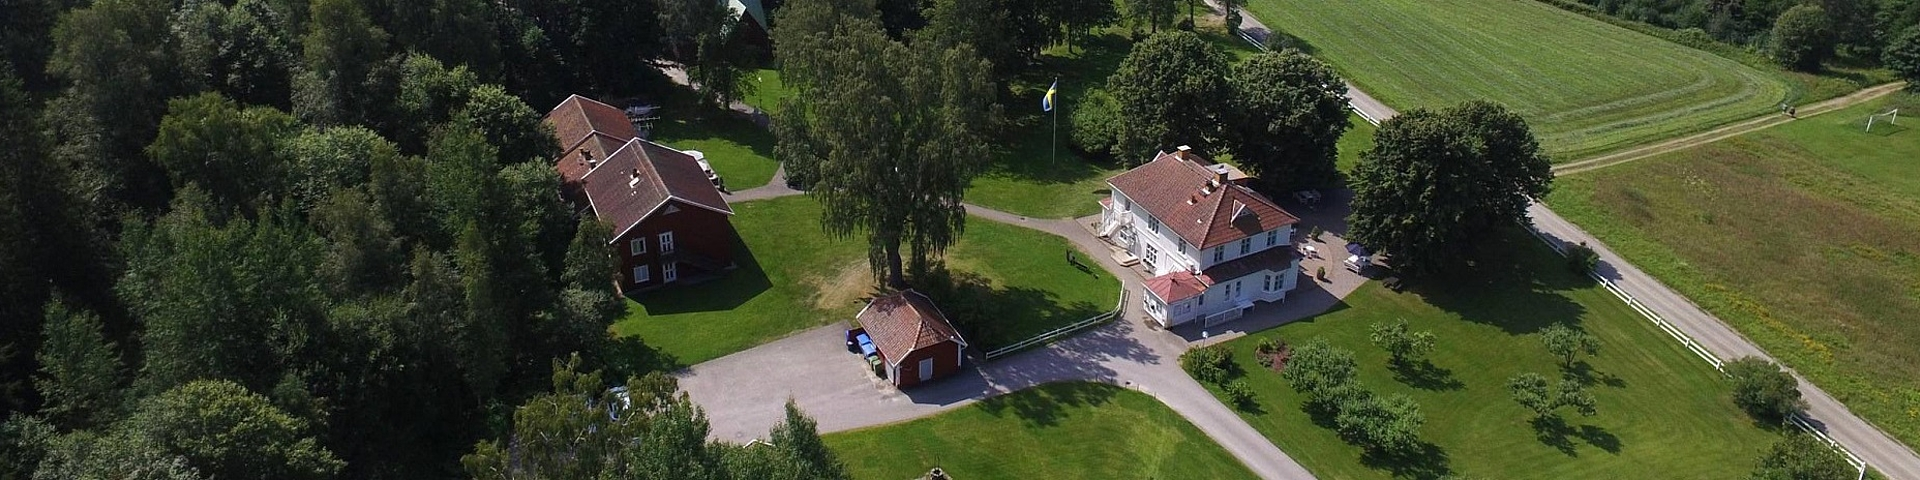 Åsundsholm Golf & Country Club